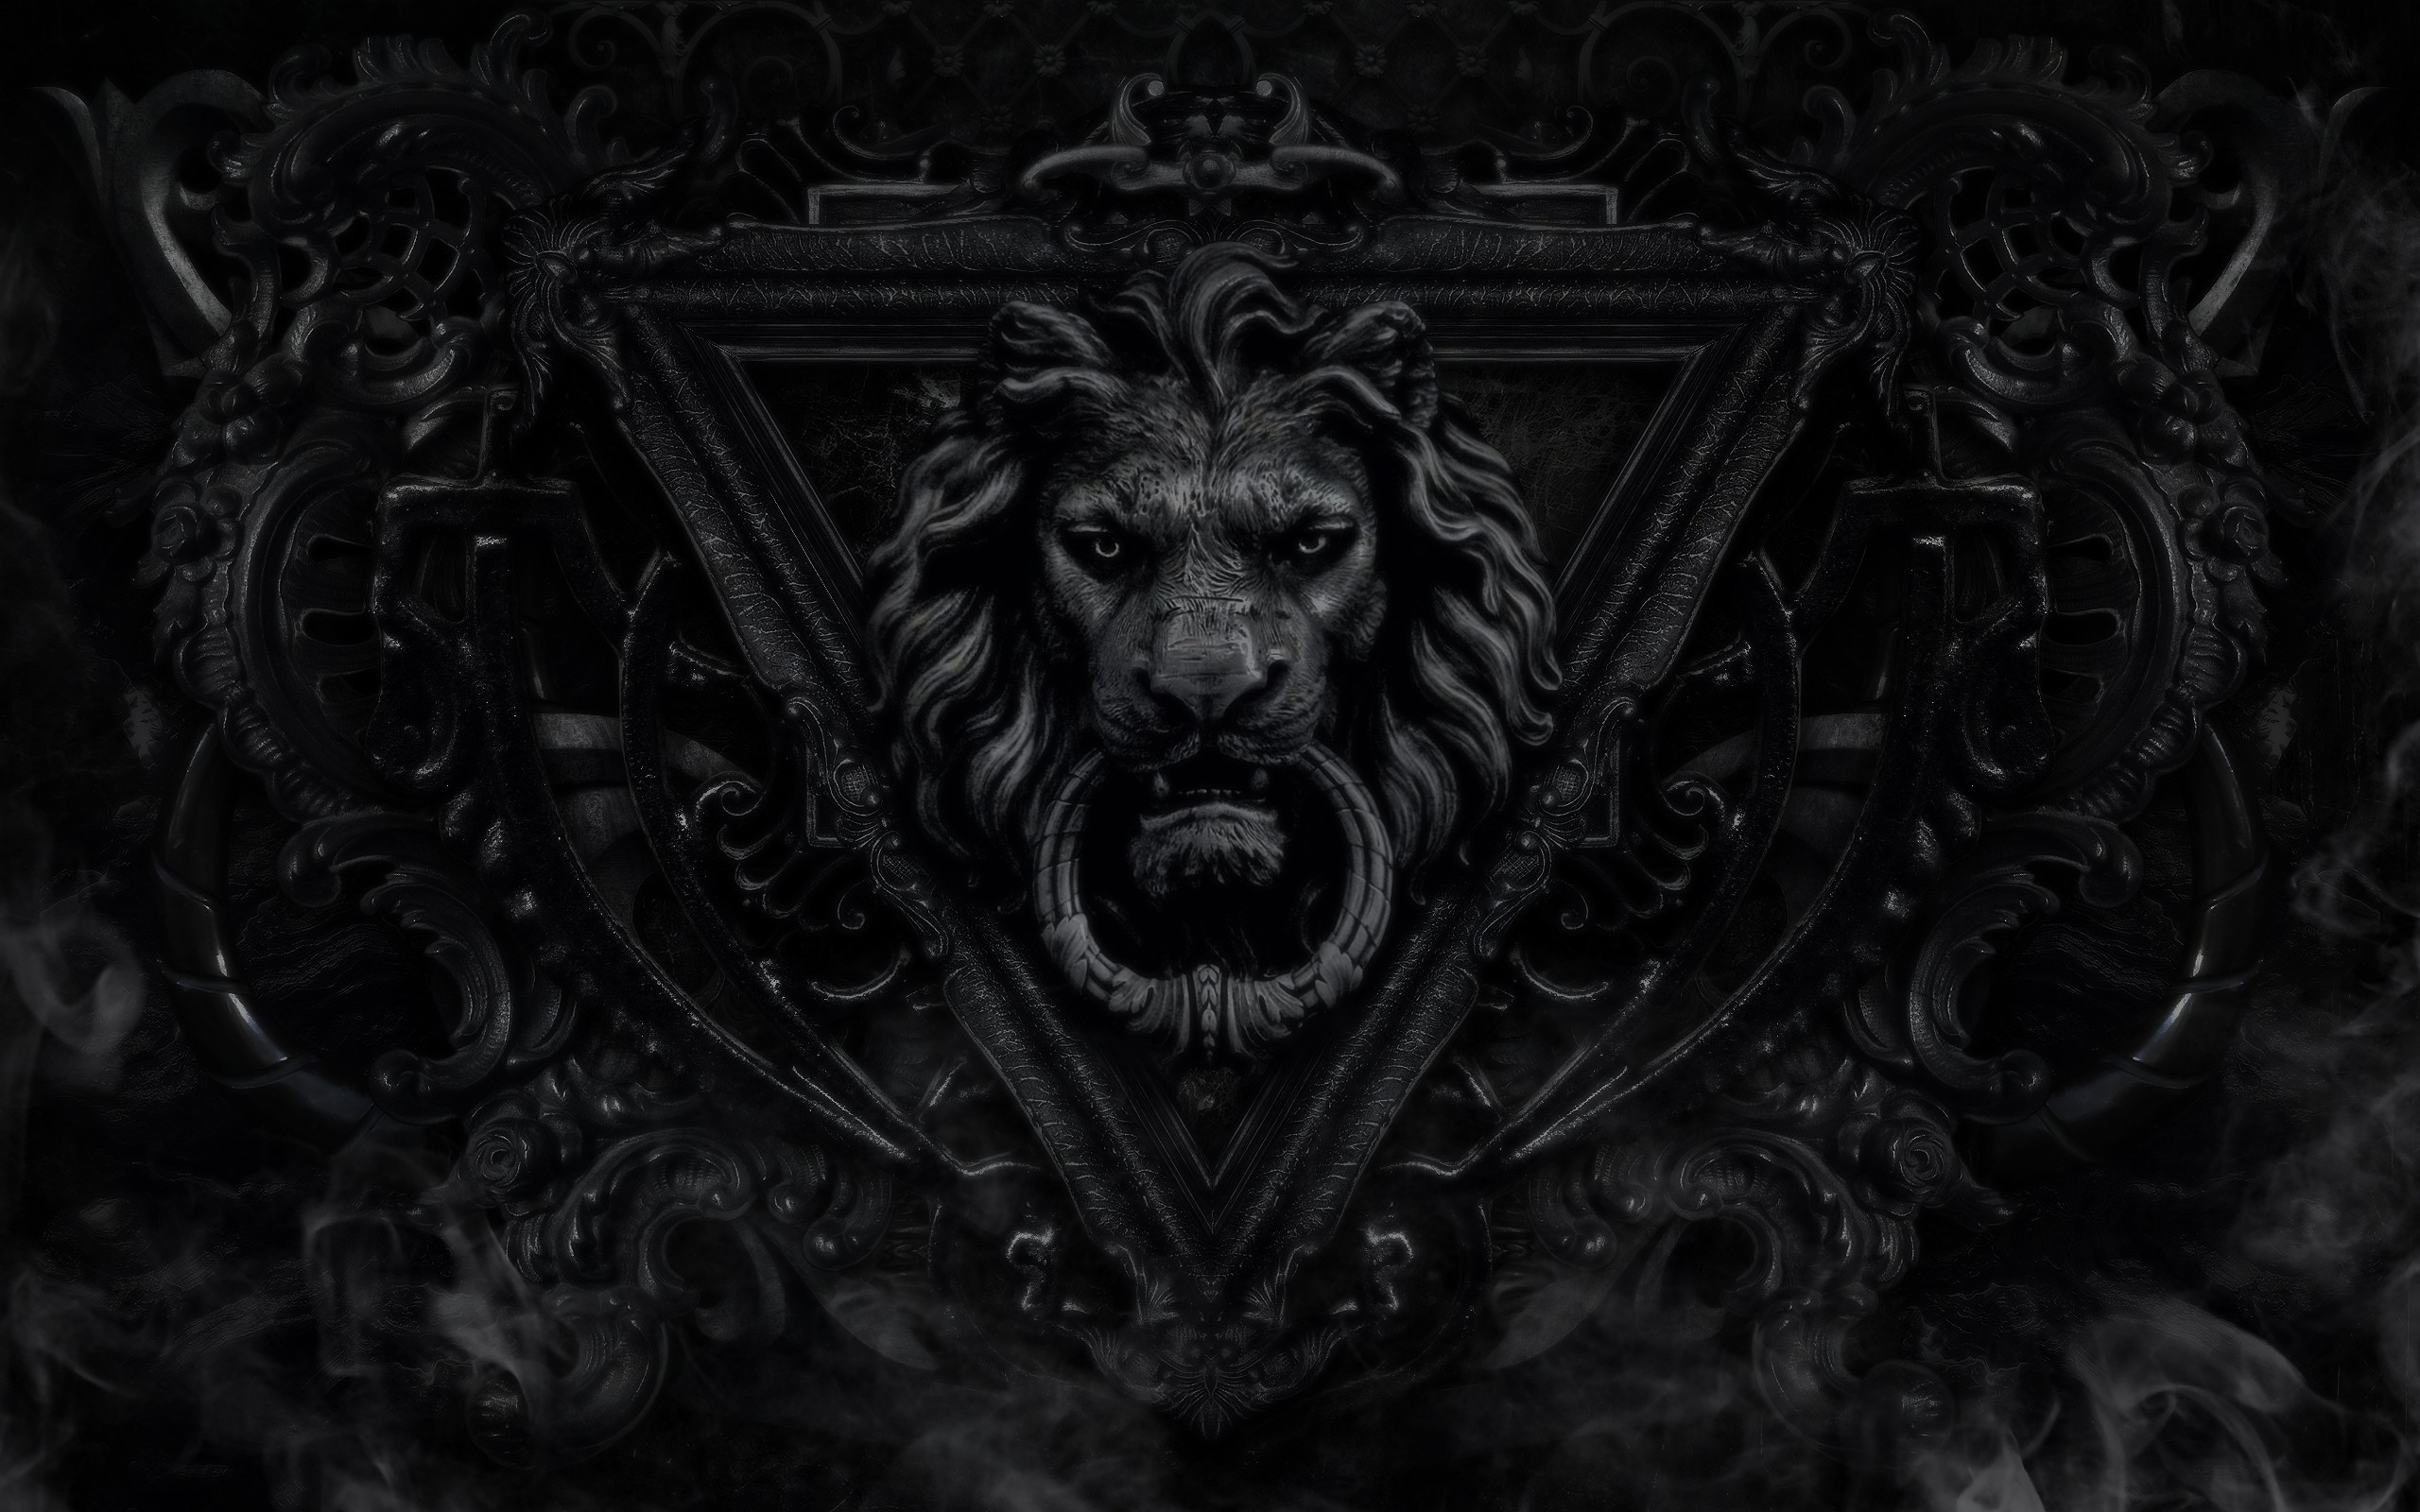 Lion Wallpaper Black And White Wallpaper HD Black And White Iphone